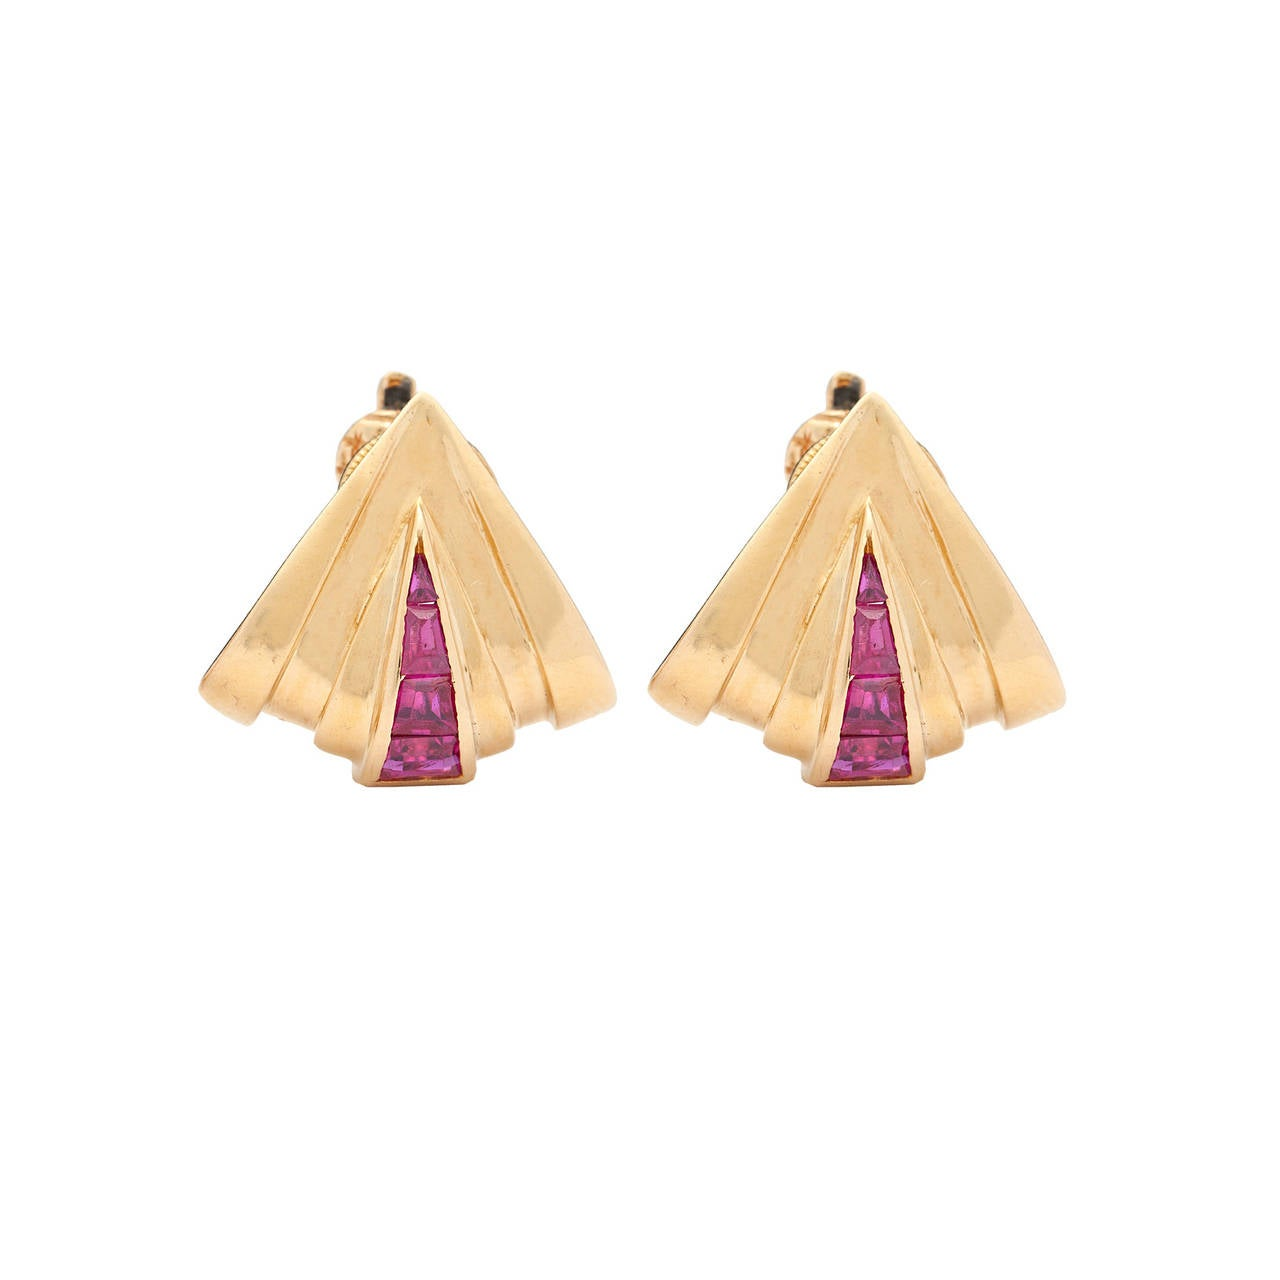 """Retro Circa: 1940. Double clip & Earrings Adorned with 48 Rubies, Set in 18Kt Yellow accented by platinum, Marked """"Tiffany & Co Paris."""" The double clips convert from one brooch (2 inches) to two clips. The non-pierced ear clips measure 16.5 mm x"""